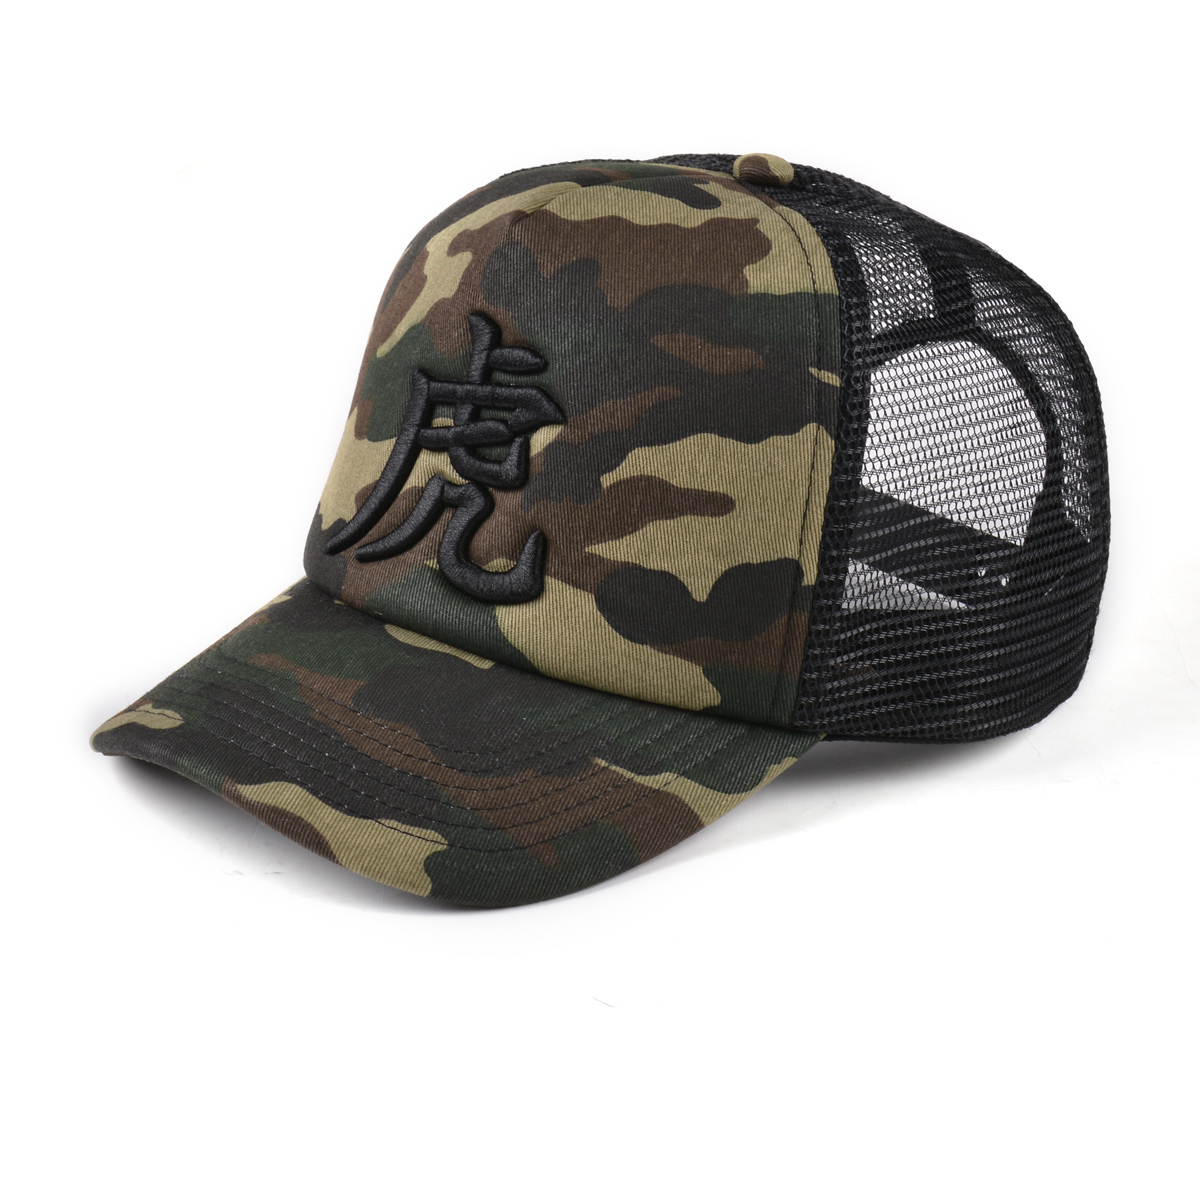 40d41f738 ASIAN TIGER MILITARY TRUCKER HAT